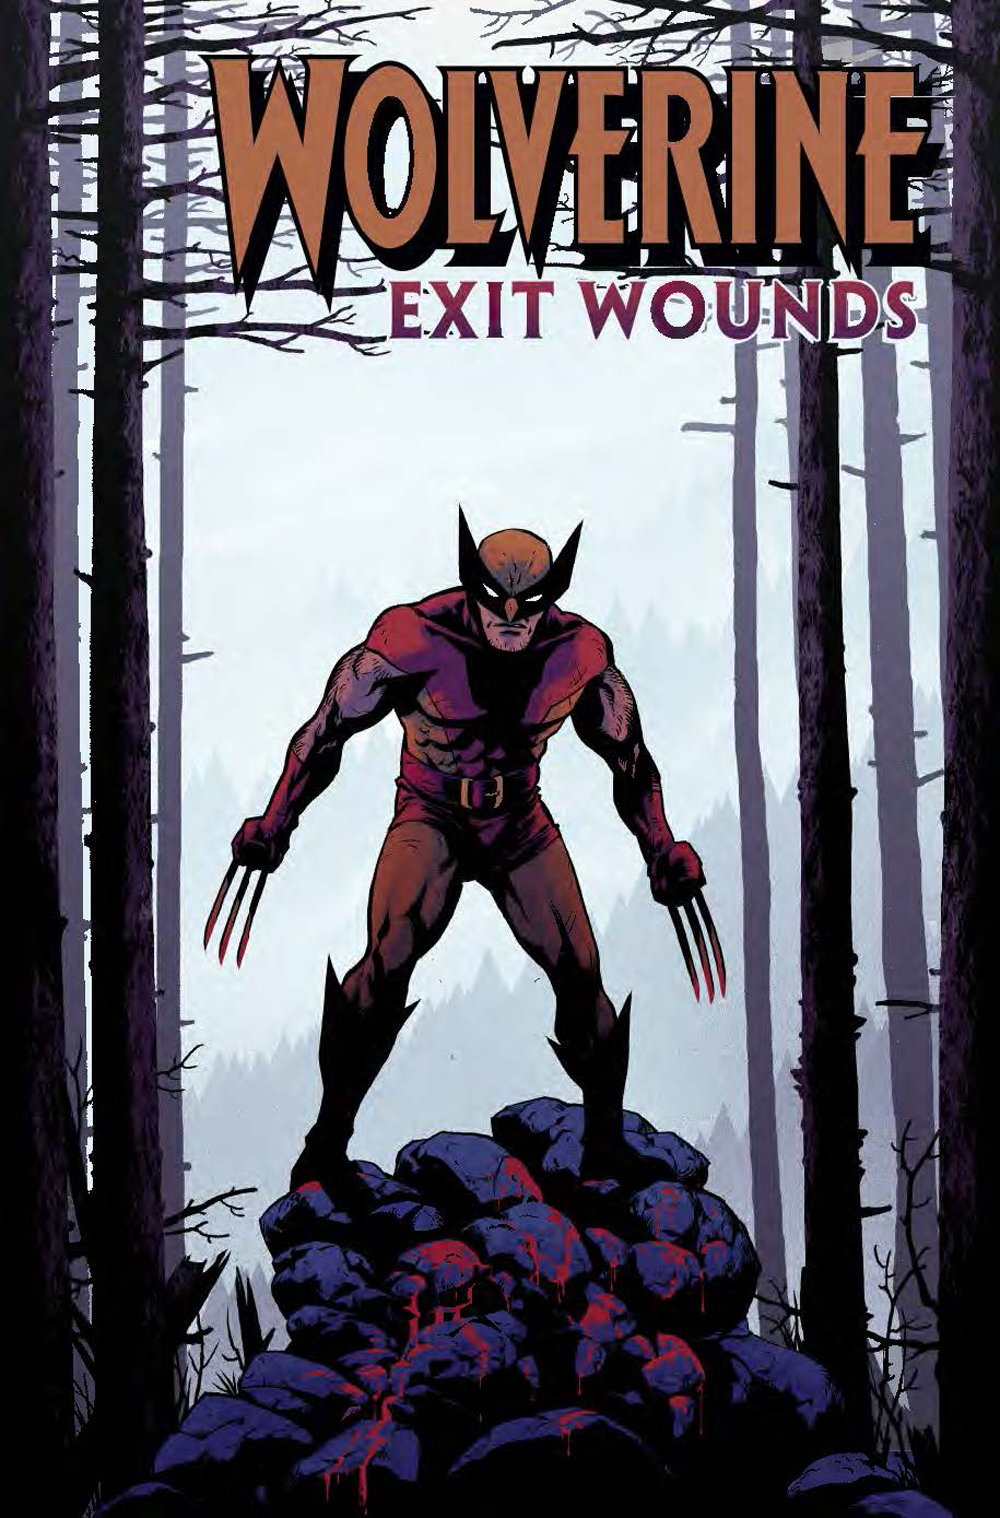 WOLVERINE EXIT WOUNDS #1 CLOONAN VAR